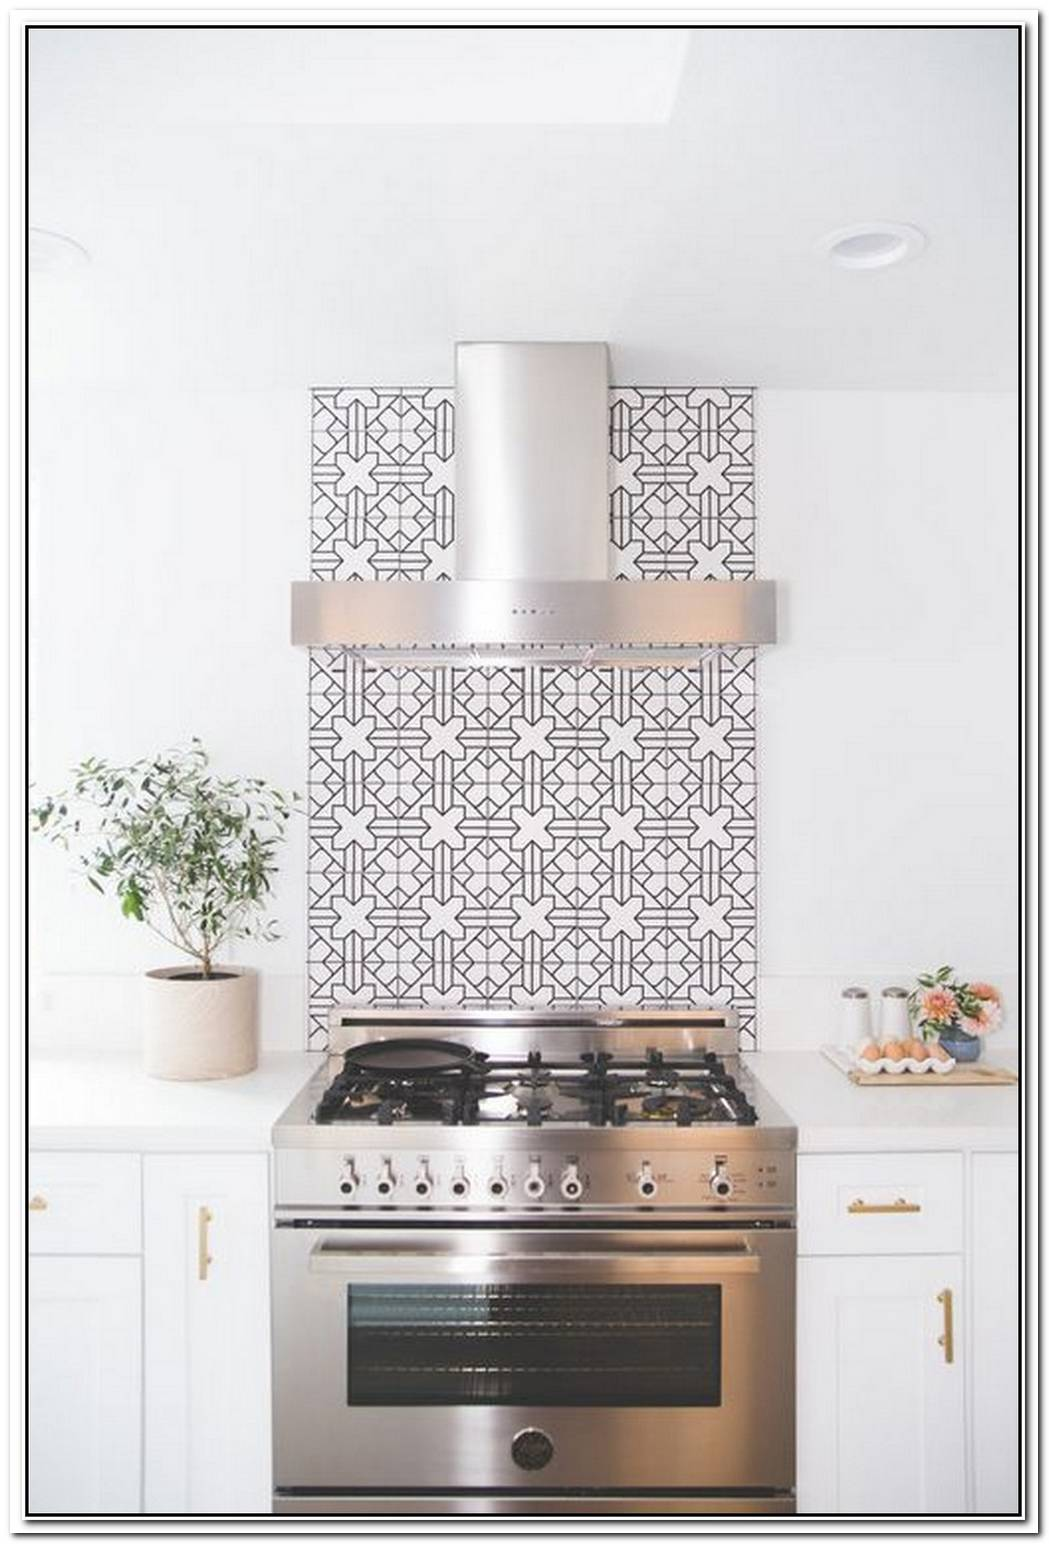 Statement Backsplash Is Always A Good Idea